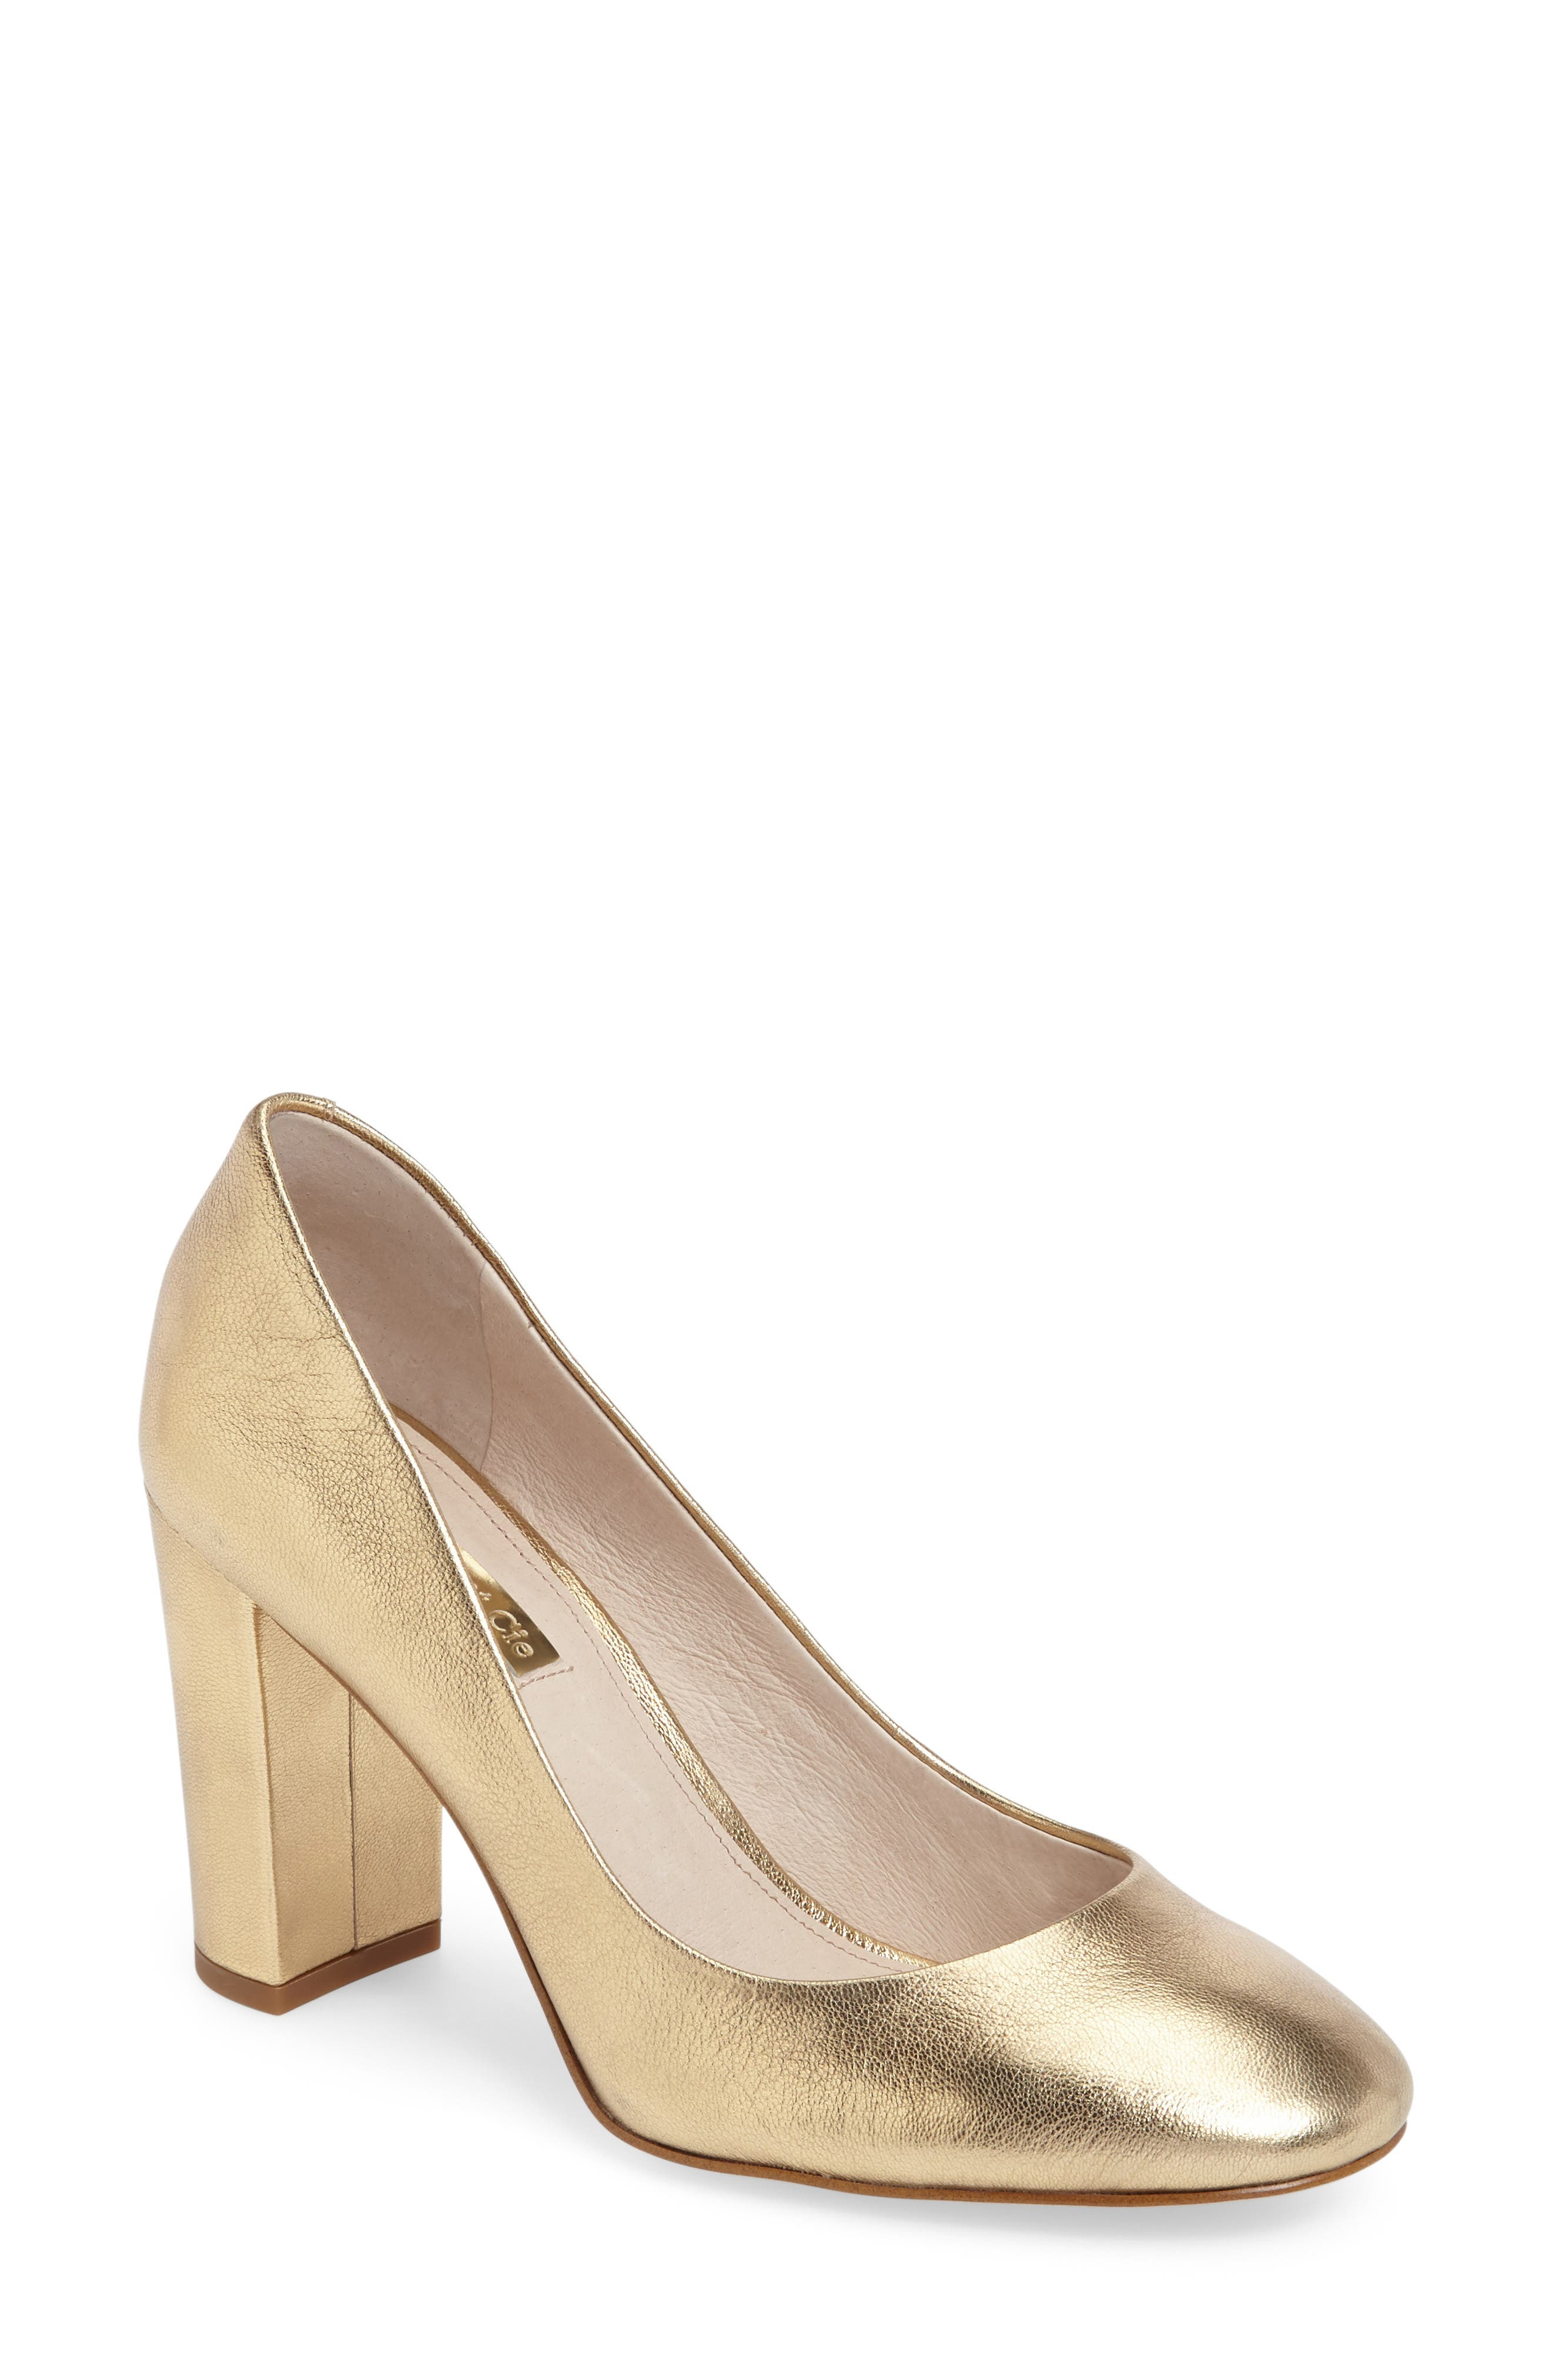 Jianna Stacked Heel Pump,                         Main,                         color, Gilded Gold Leather